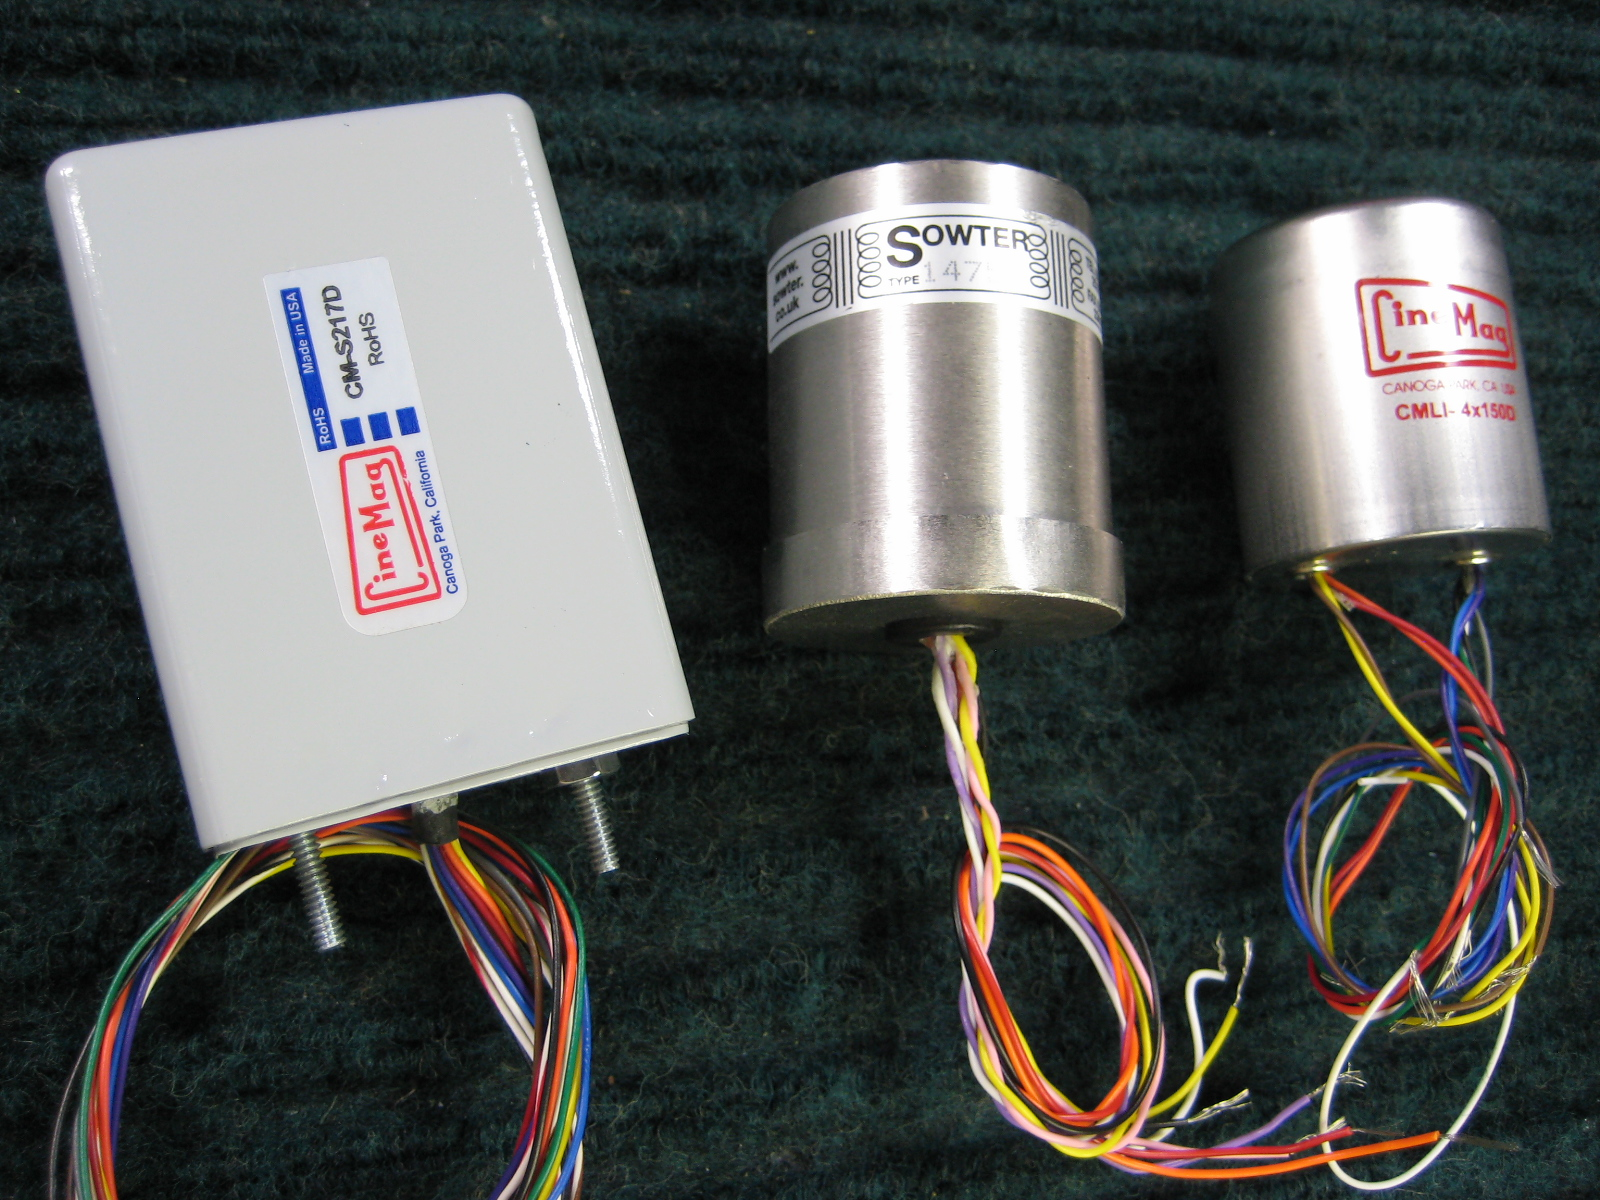 CineMag CM-S217D Pultec Output Transformer and CineMag CMLI 4x150D Input Transformer, Sowter 1475 Interstage Transformer